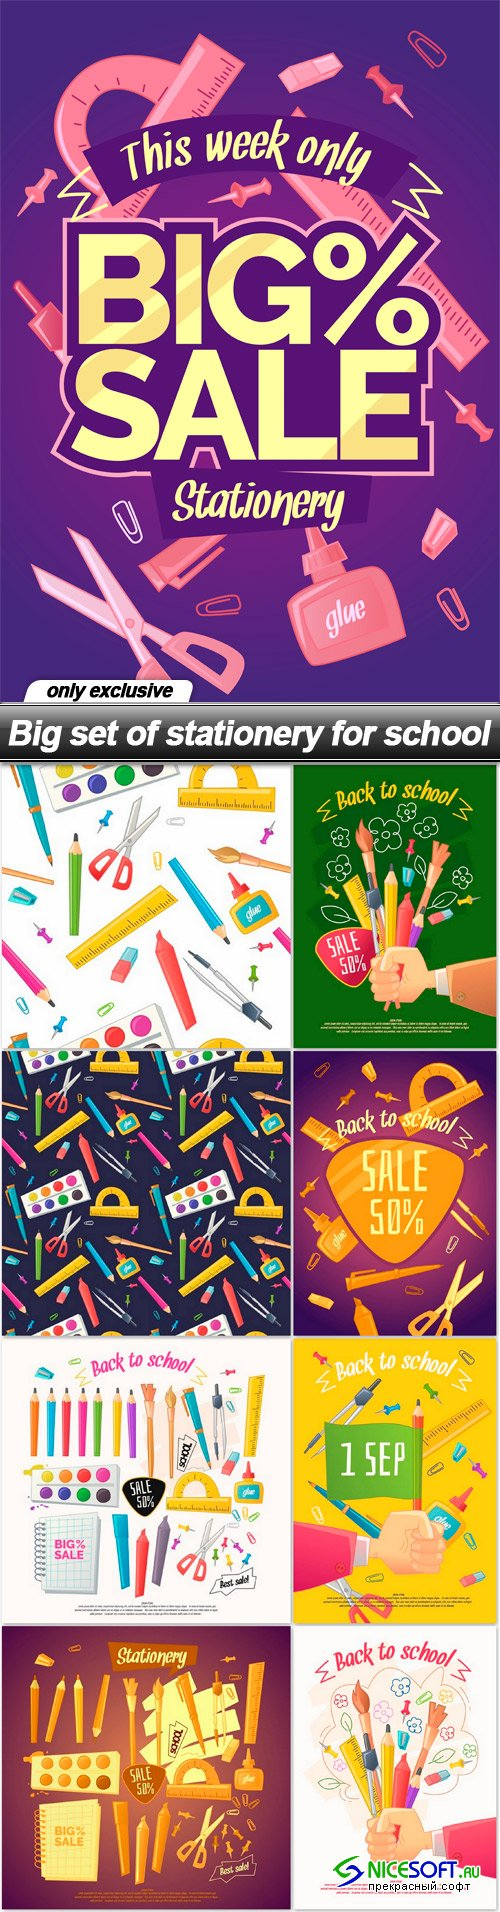 Big set of stationery for school